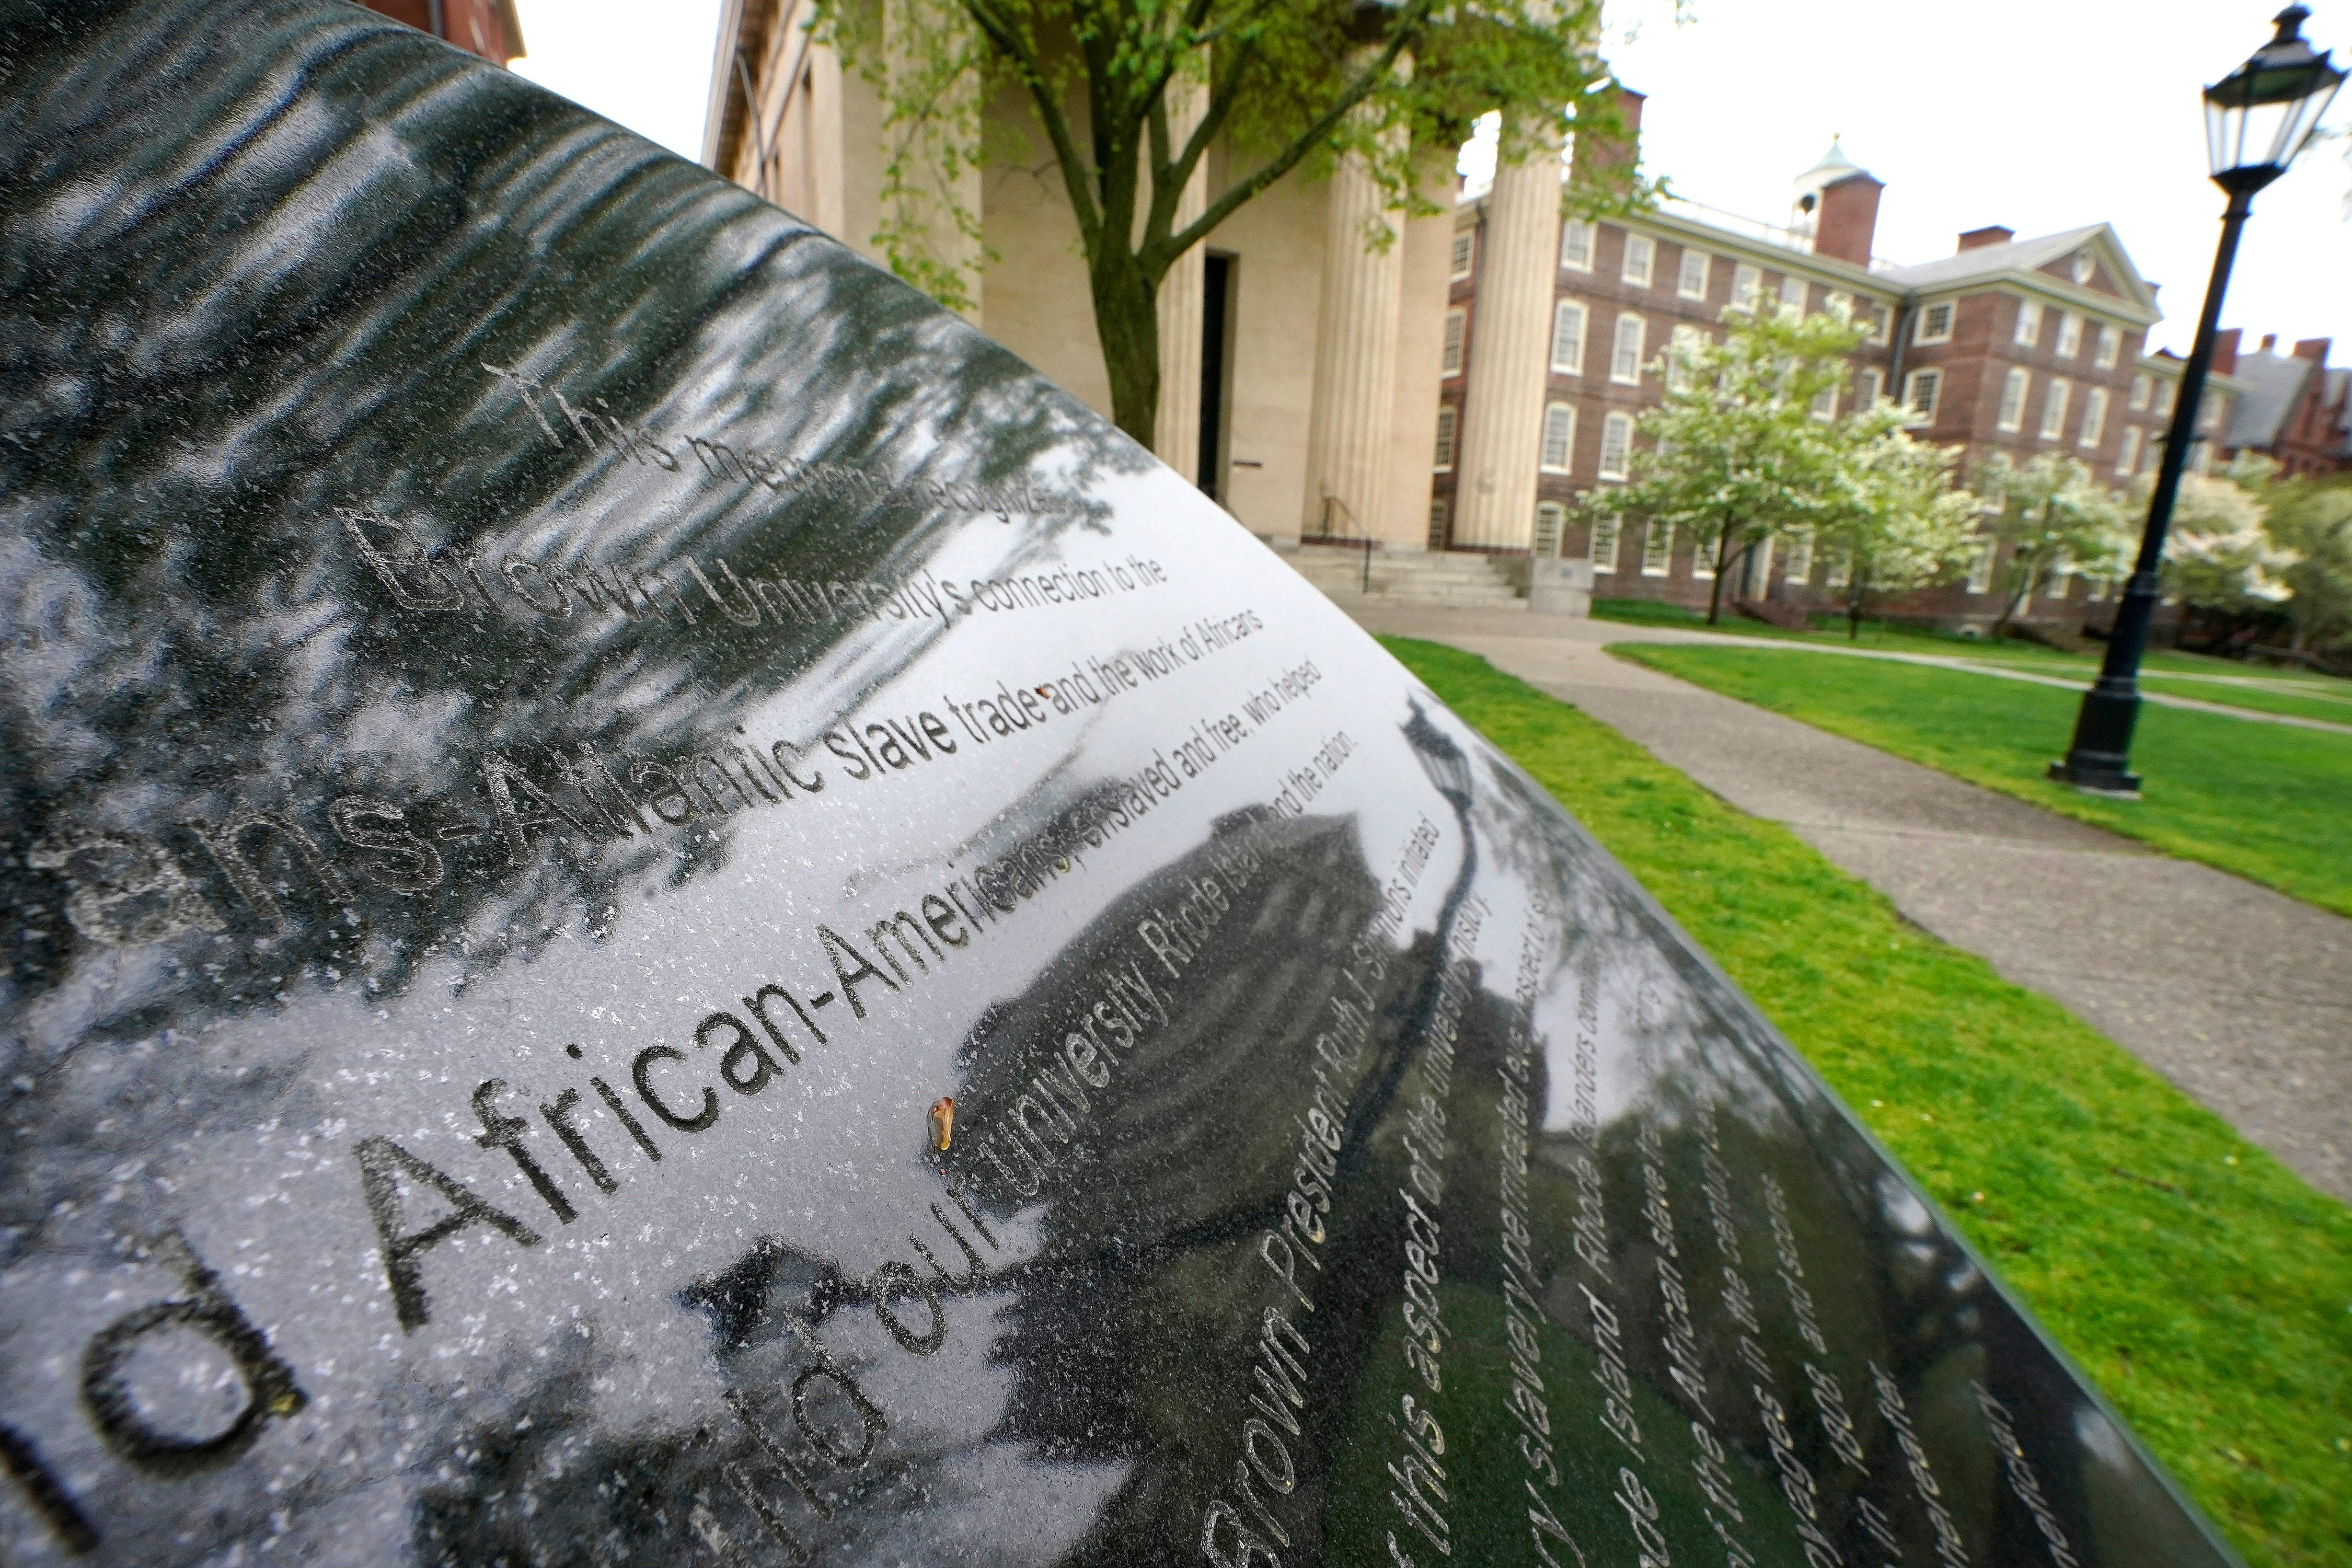 Words engraved on a stone plinth form a component of the Slavery Memorial by sculptor Martin Puryear, erected in 2014, on the Brown University campus in Providence, R.I., on Tuesday, May 4, 2021.